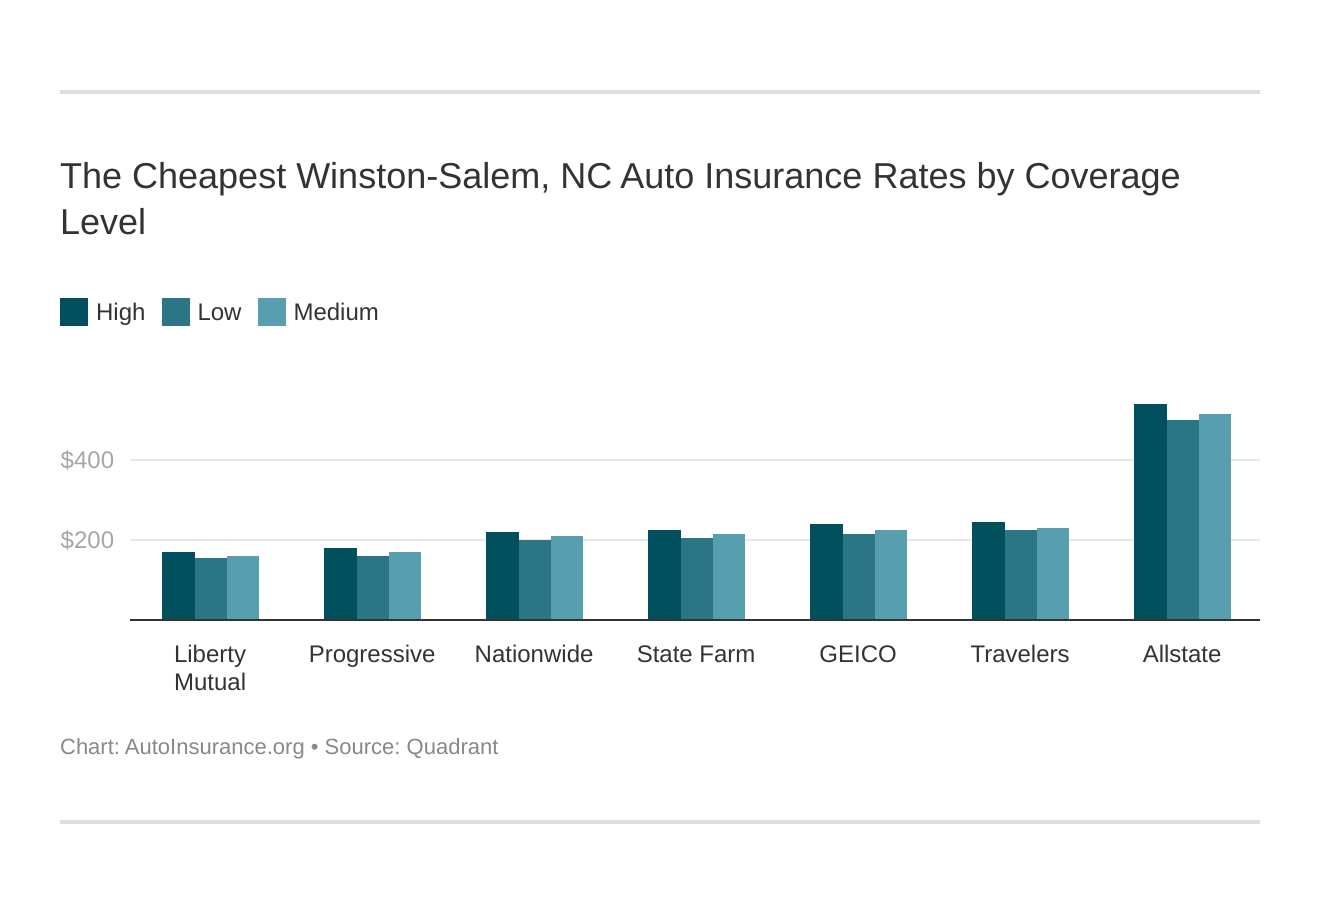 The Cheapest Winston-Salem, NC Auto Insurance Rates by Coverage Level